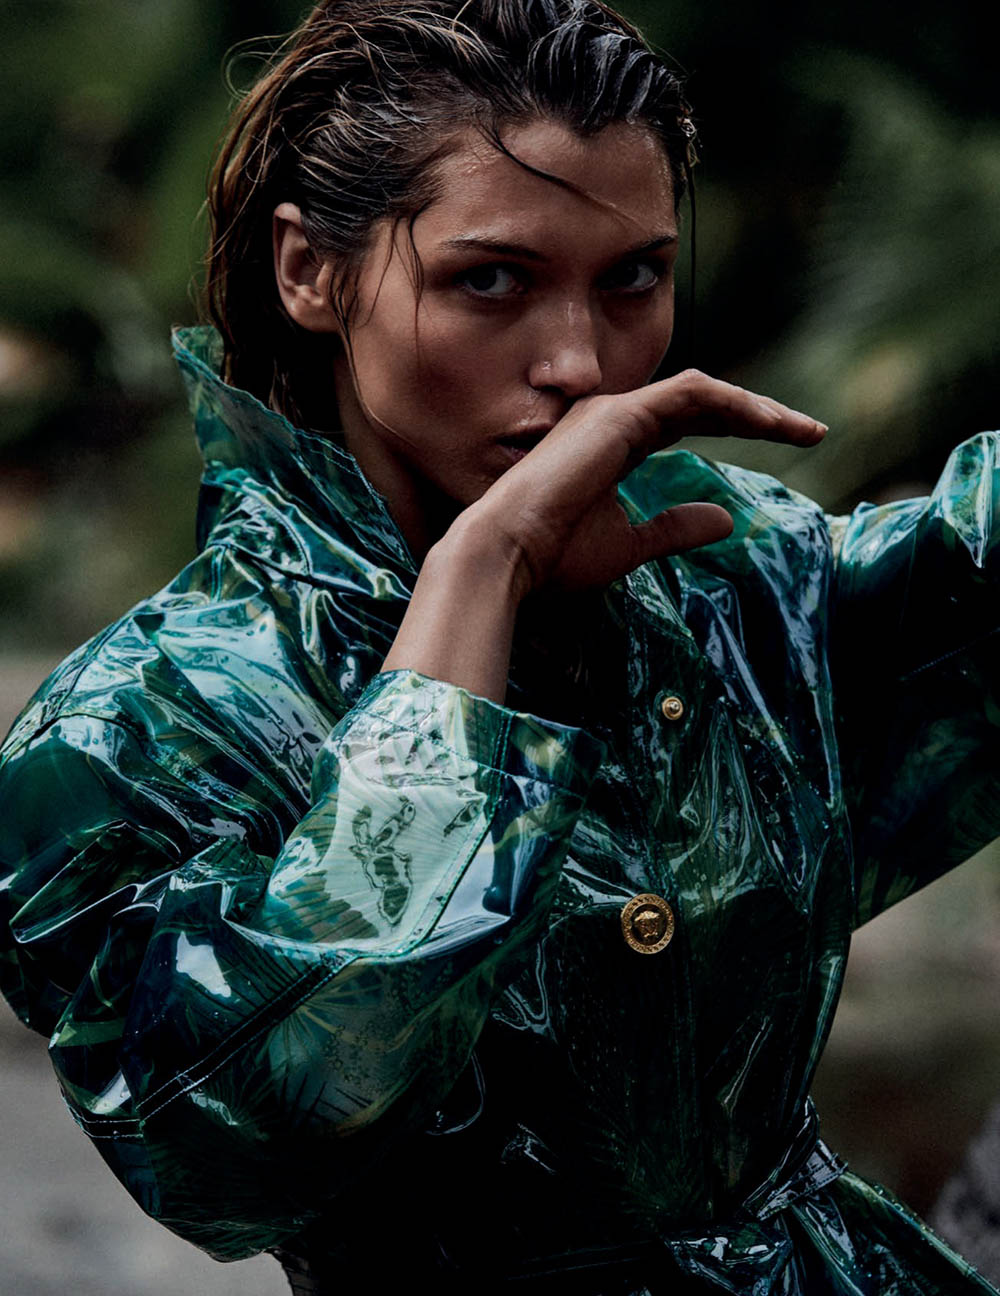 Hana Jirickova by Alvaro Beamud for Vogue Spain May 2020